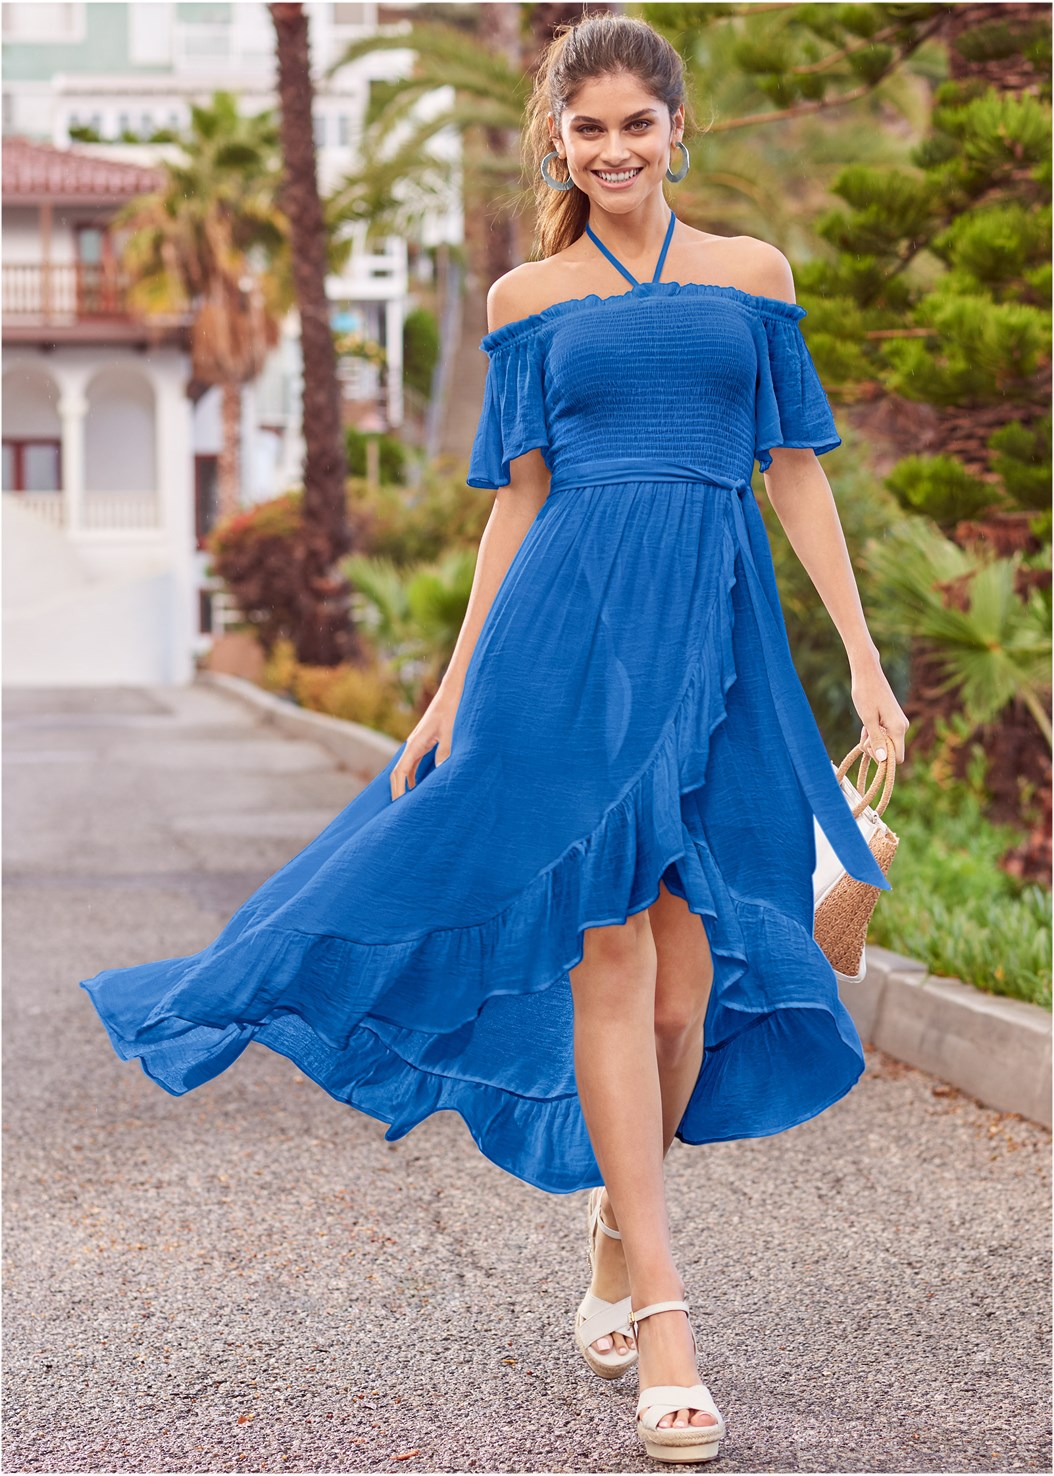 Off Shoulder Ruffle Dress,Embellished Wedges,Raffia Detail Bag